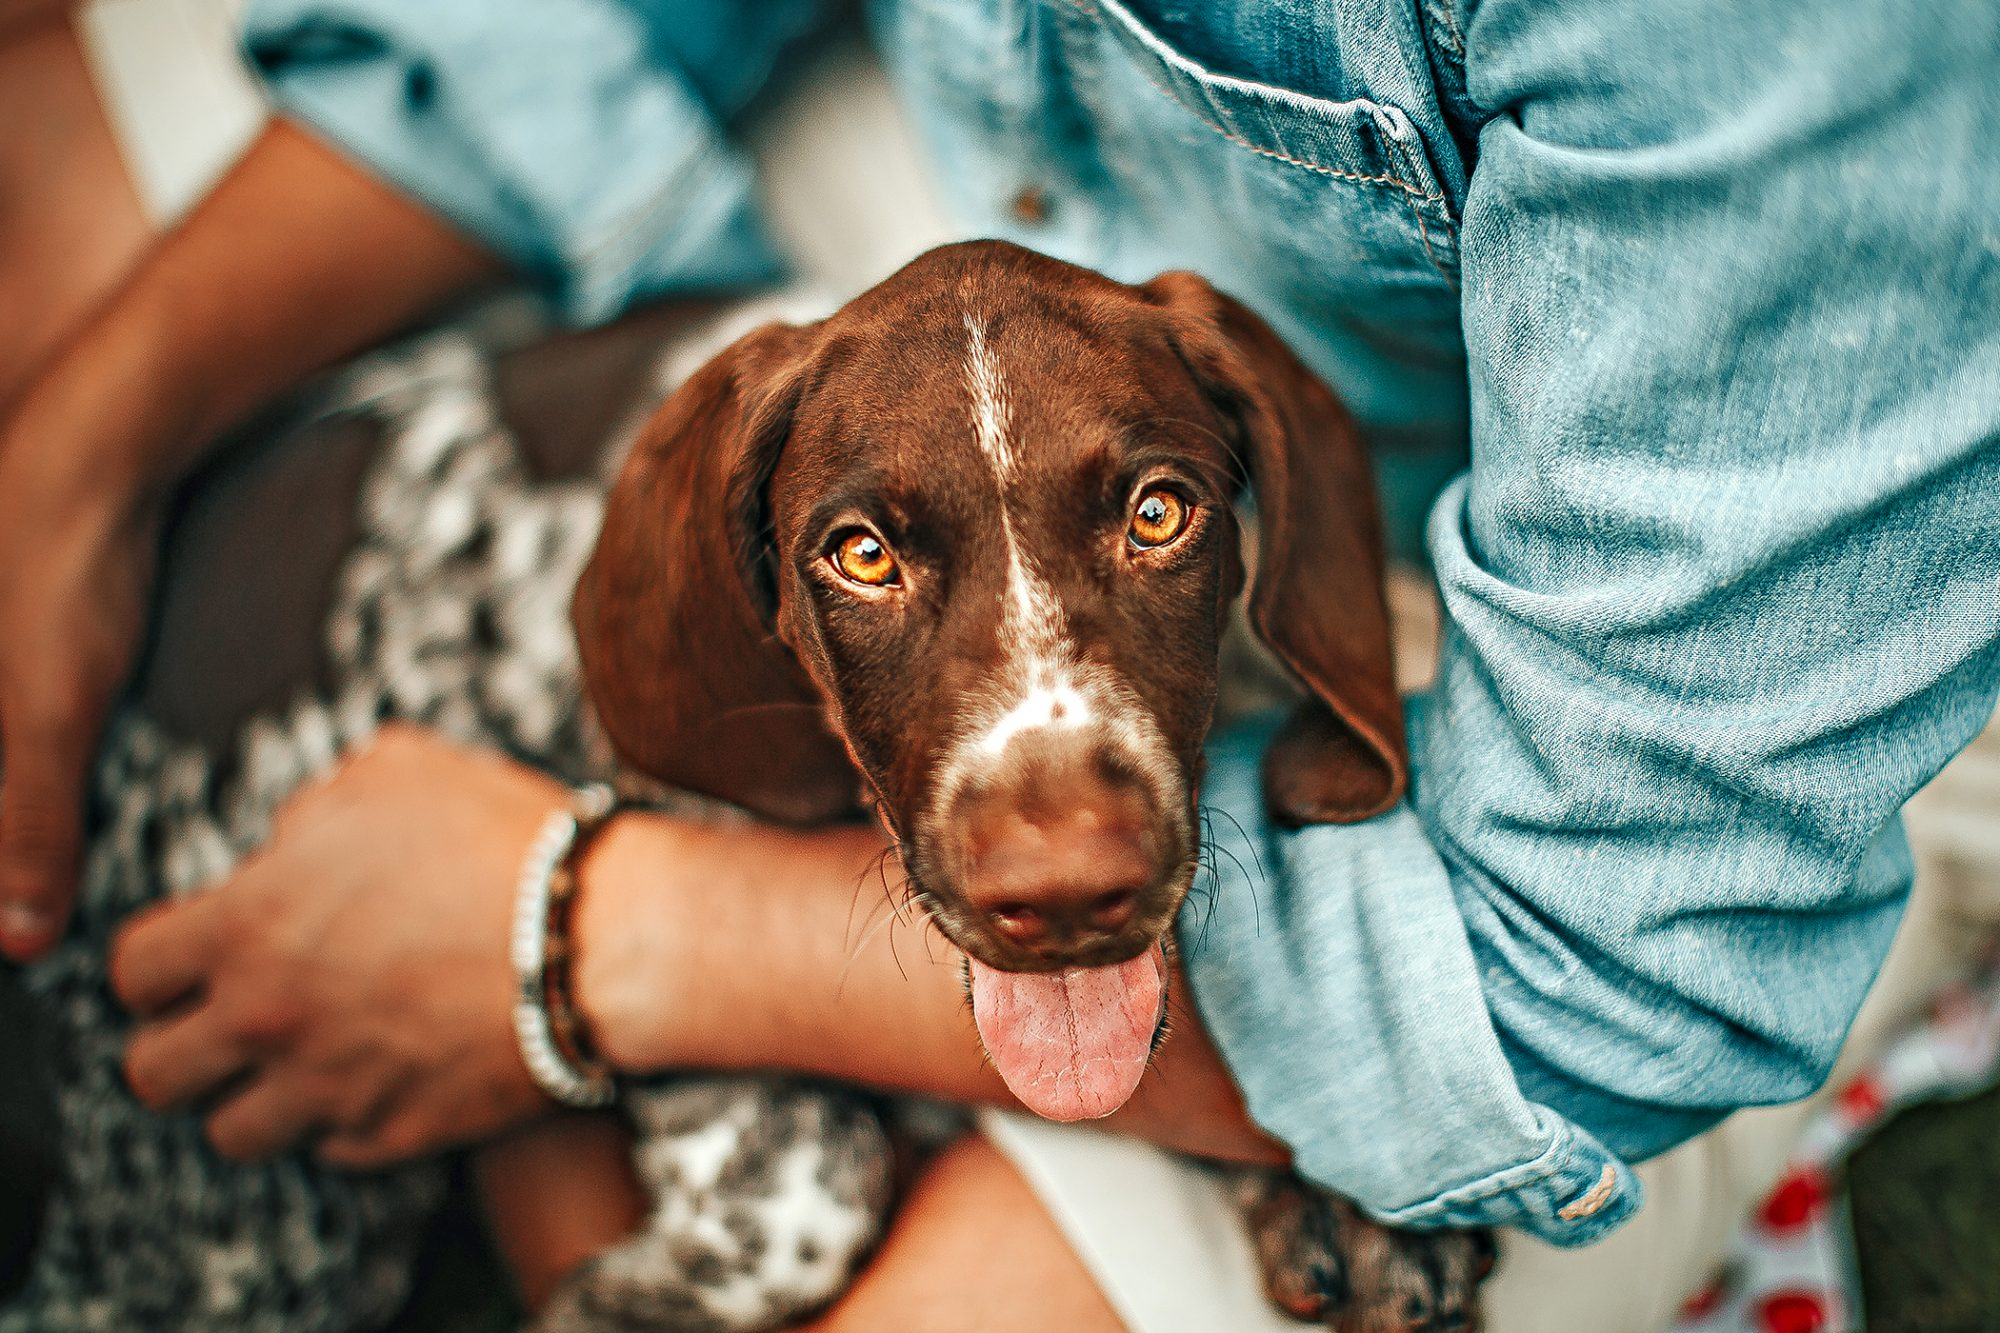 german shorthaired pointer sitting in owner's arm with his tongue out looking at the camera